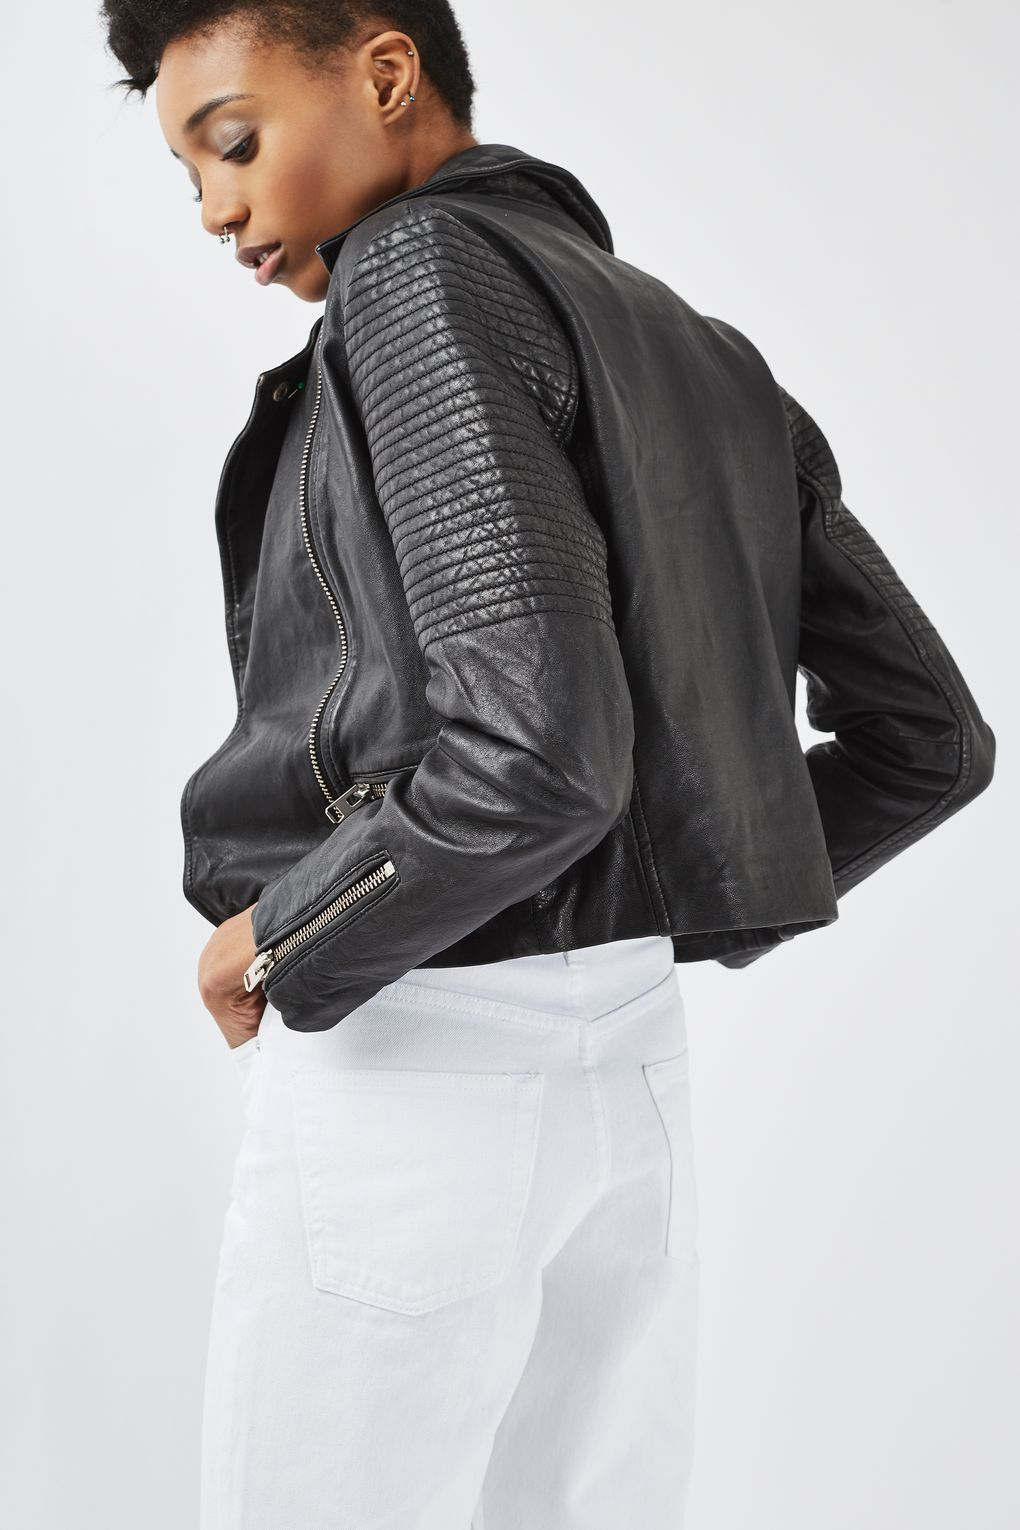 Real Leather Biker Jacket Jackets, Leather, Classic leather